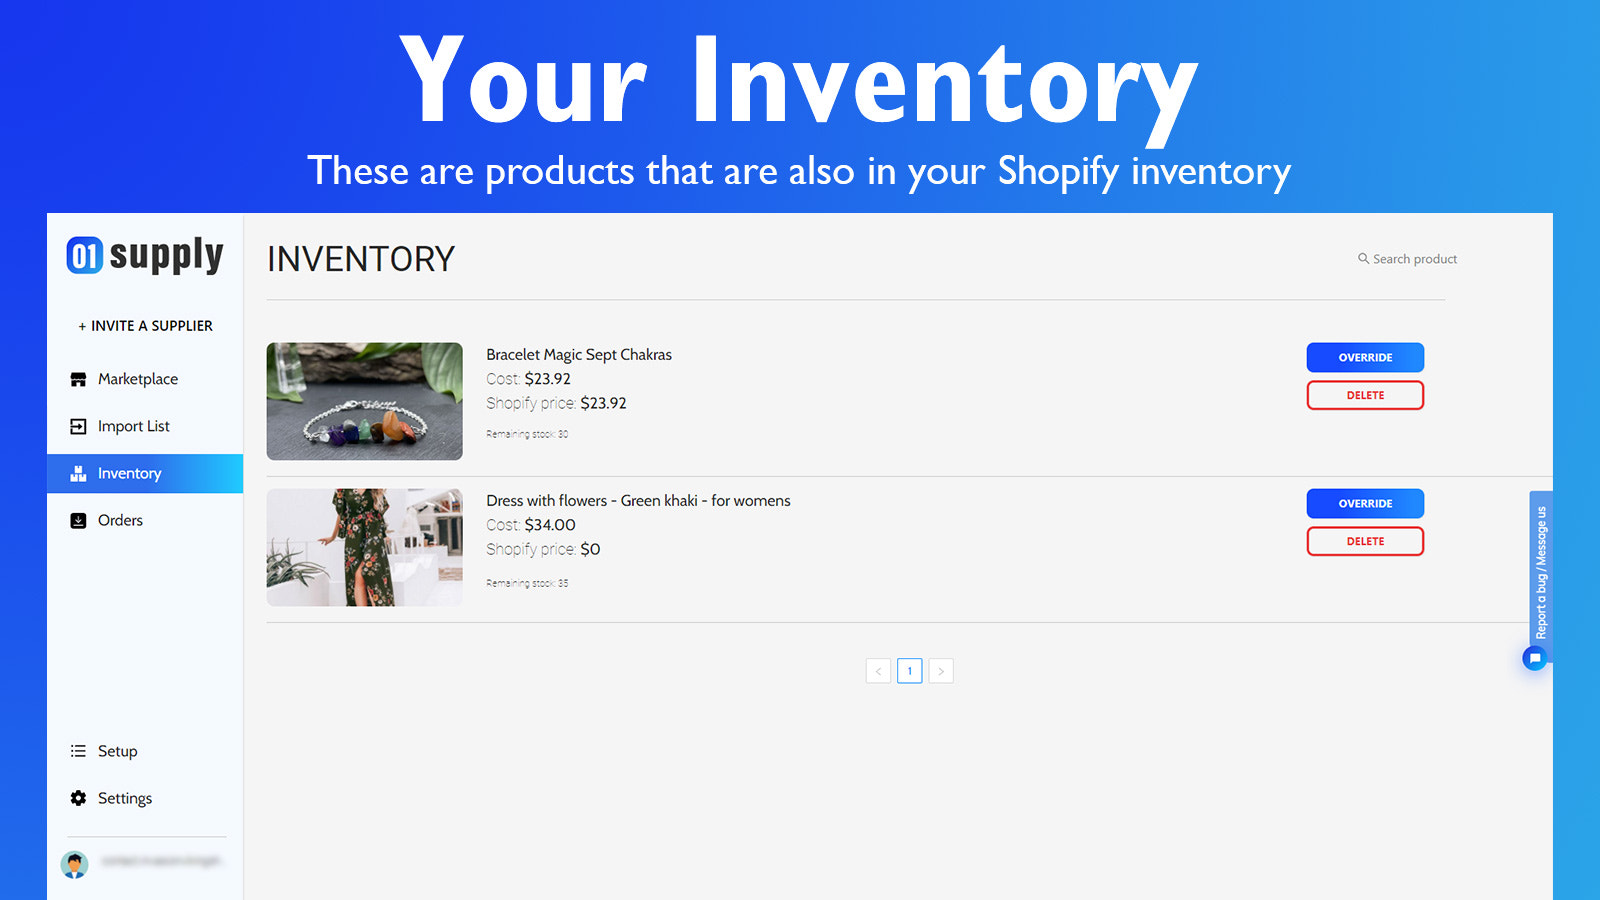 Your inventory